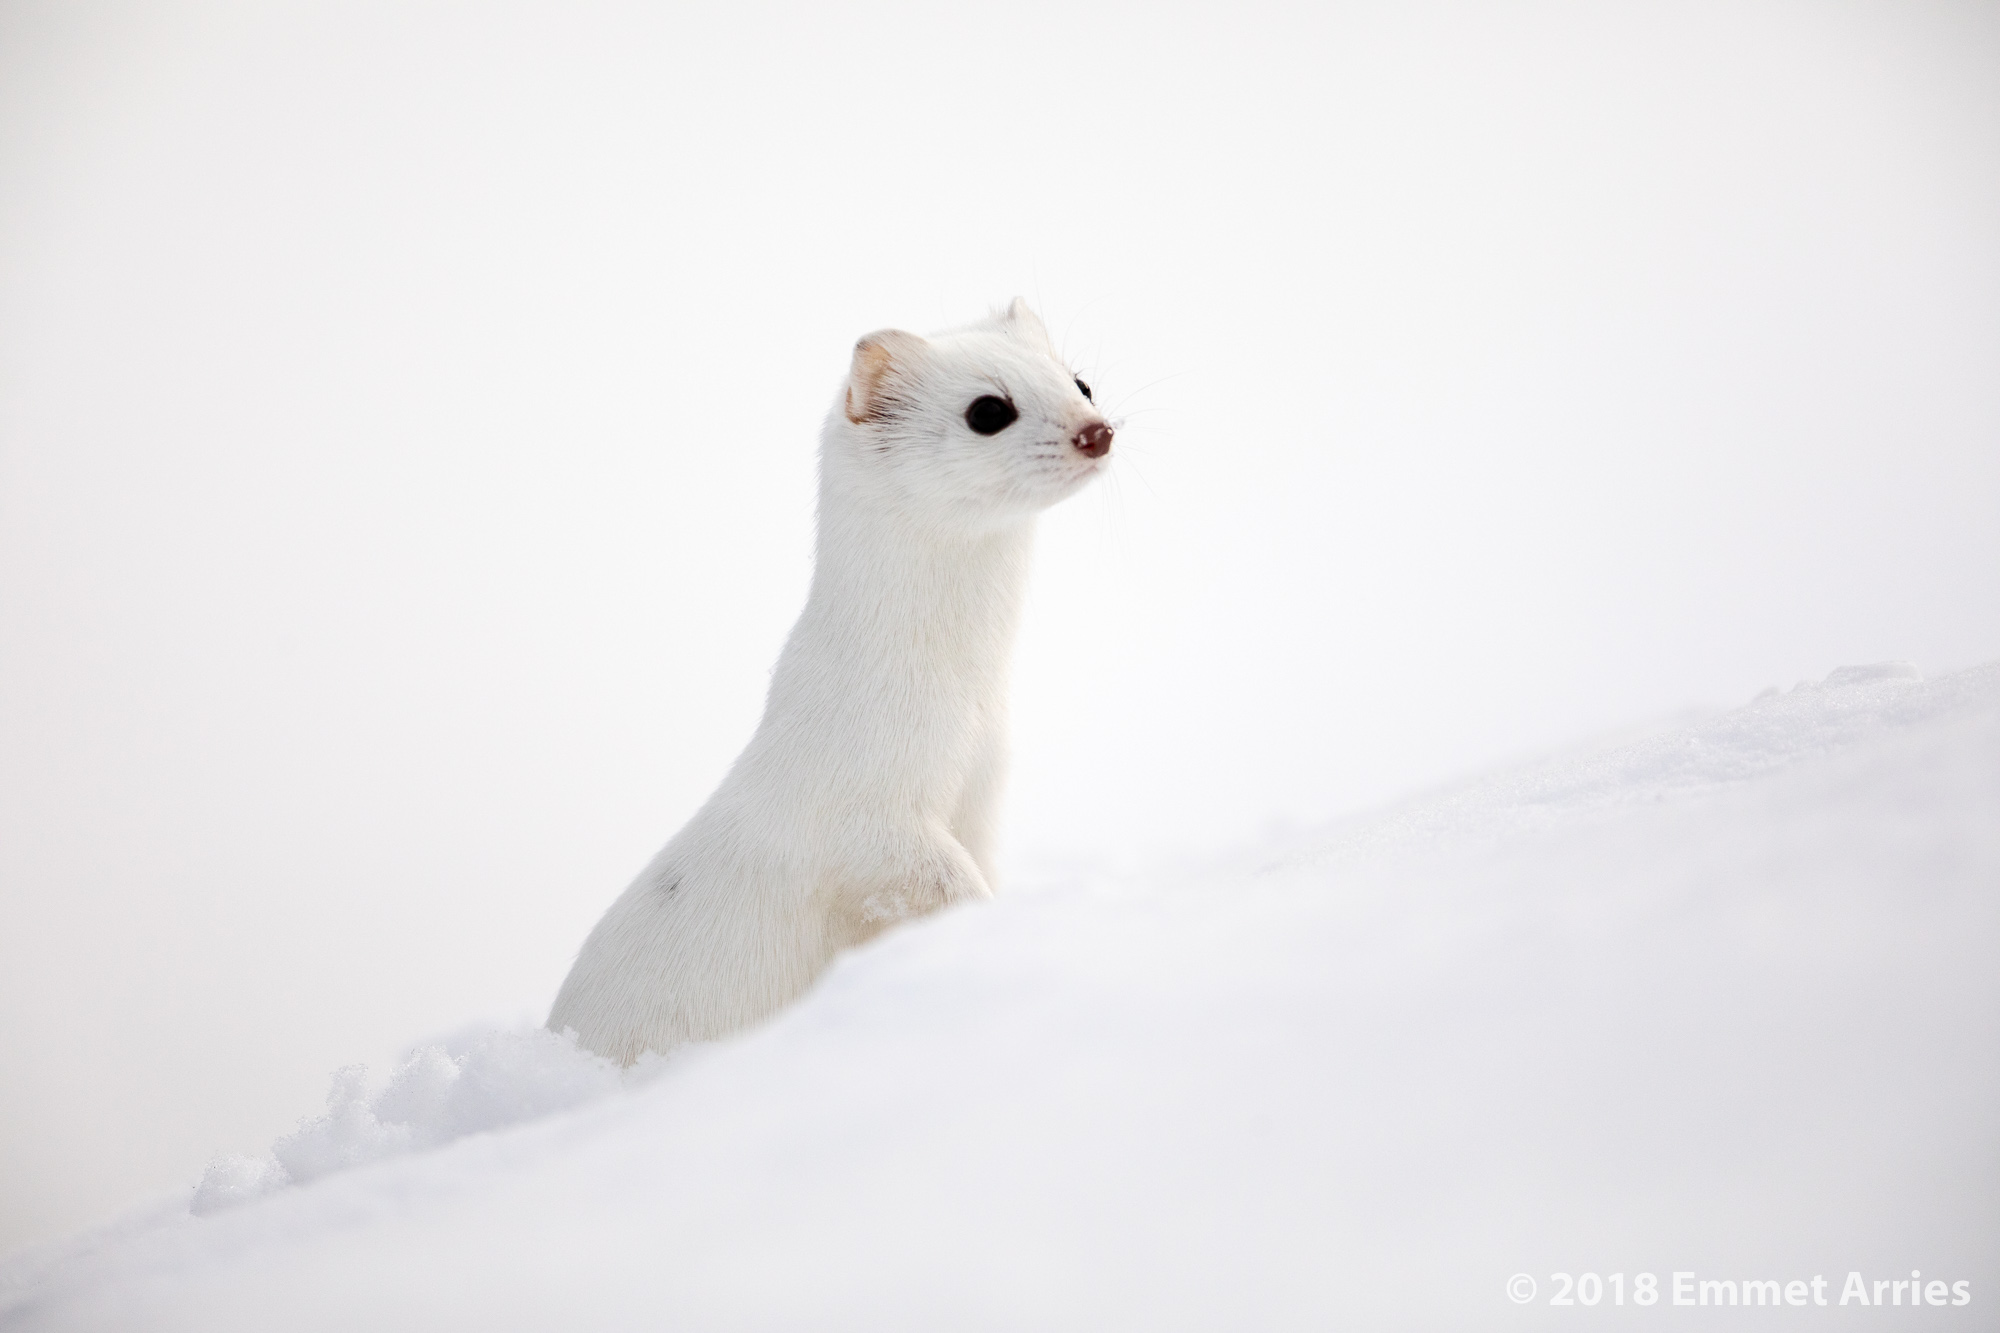 This was my first photographic encounter with a Long-tailed Weasel. They are incredibly fast! This was the only photo that was in focus when it ran near me becuase trying to keep a little weasel in the frame when using a 600mm lens is extremely hard.